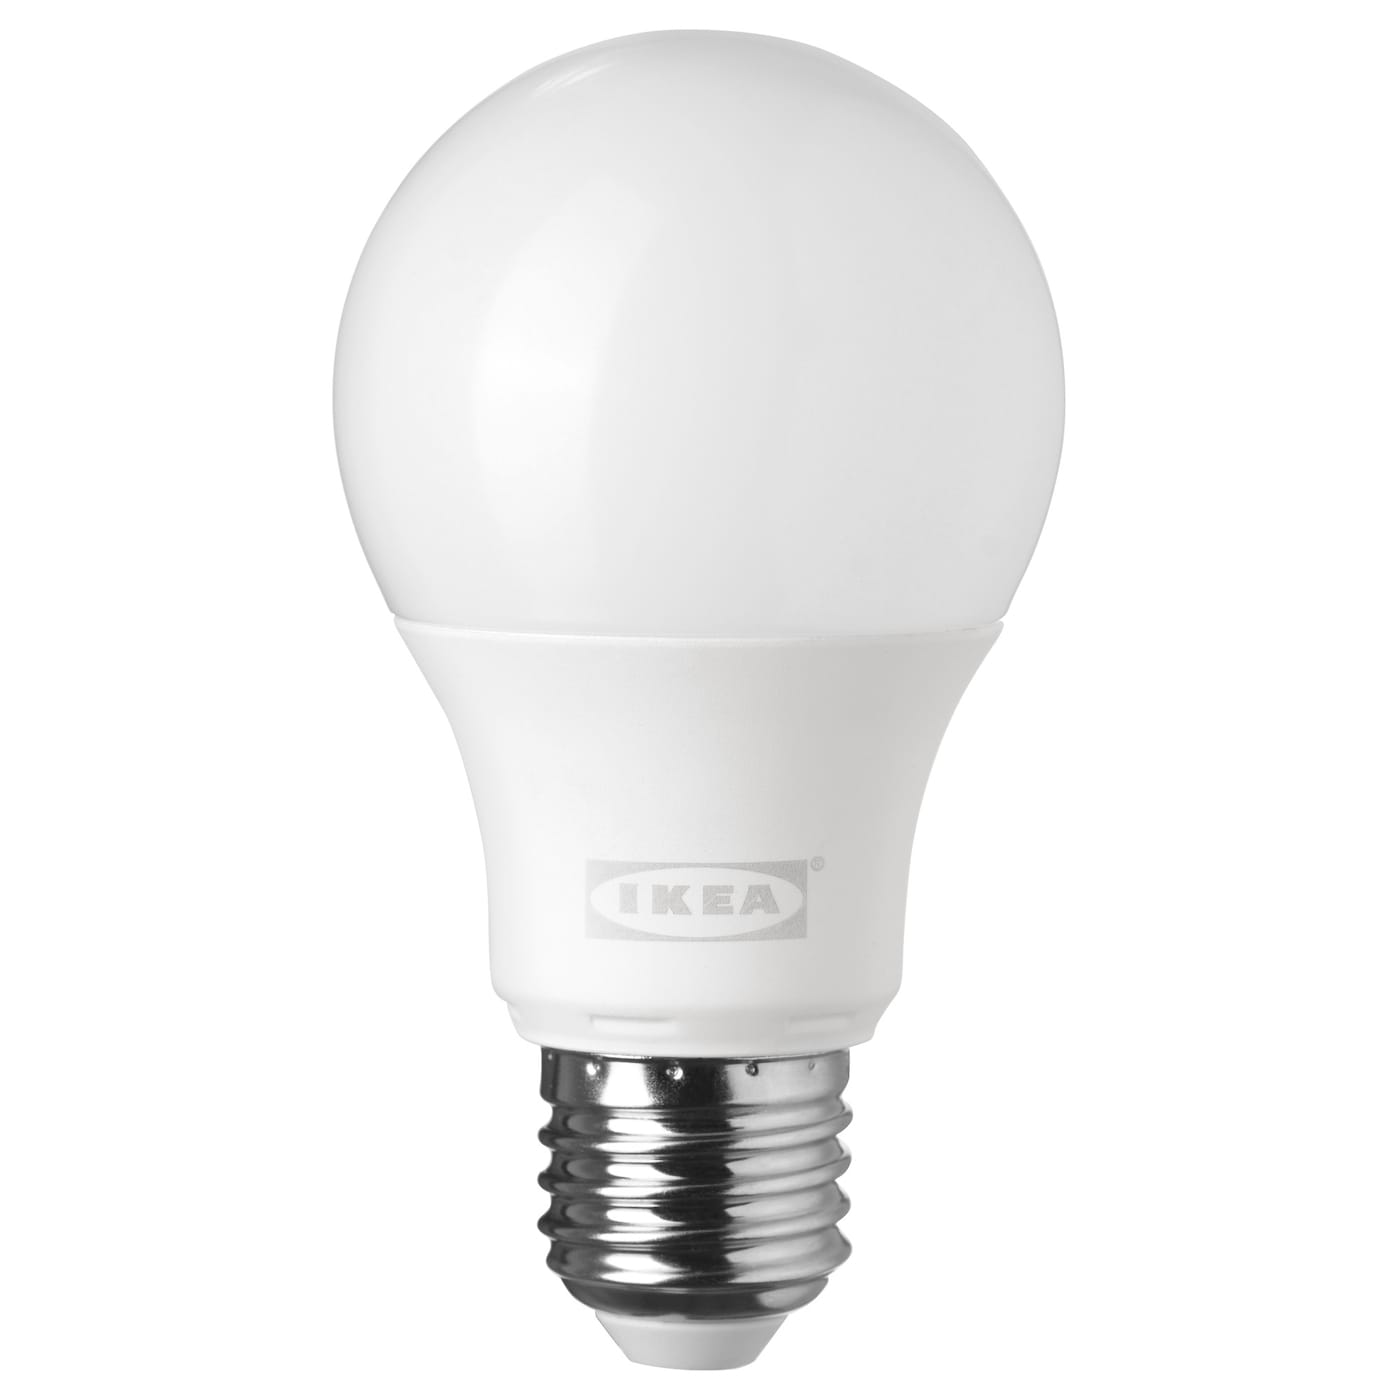 ledare led bulb e27 400 lumen dimmable globe opal white ikea. Black Bedroom Furniture Sets. Home Design Ideas